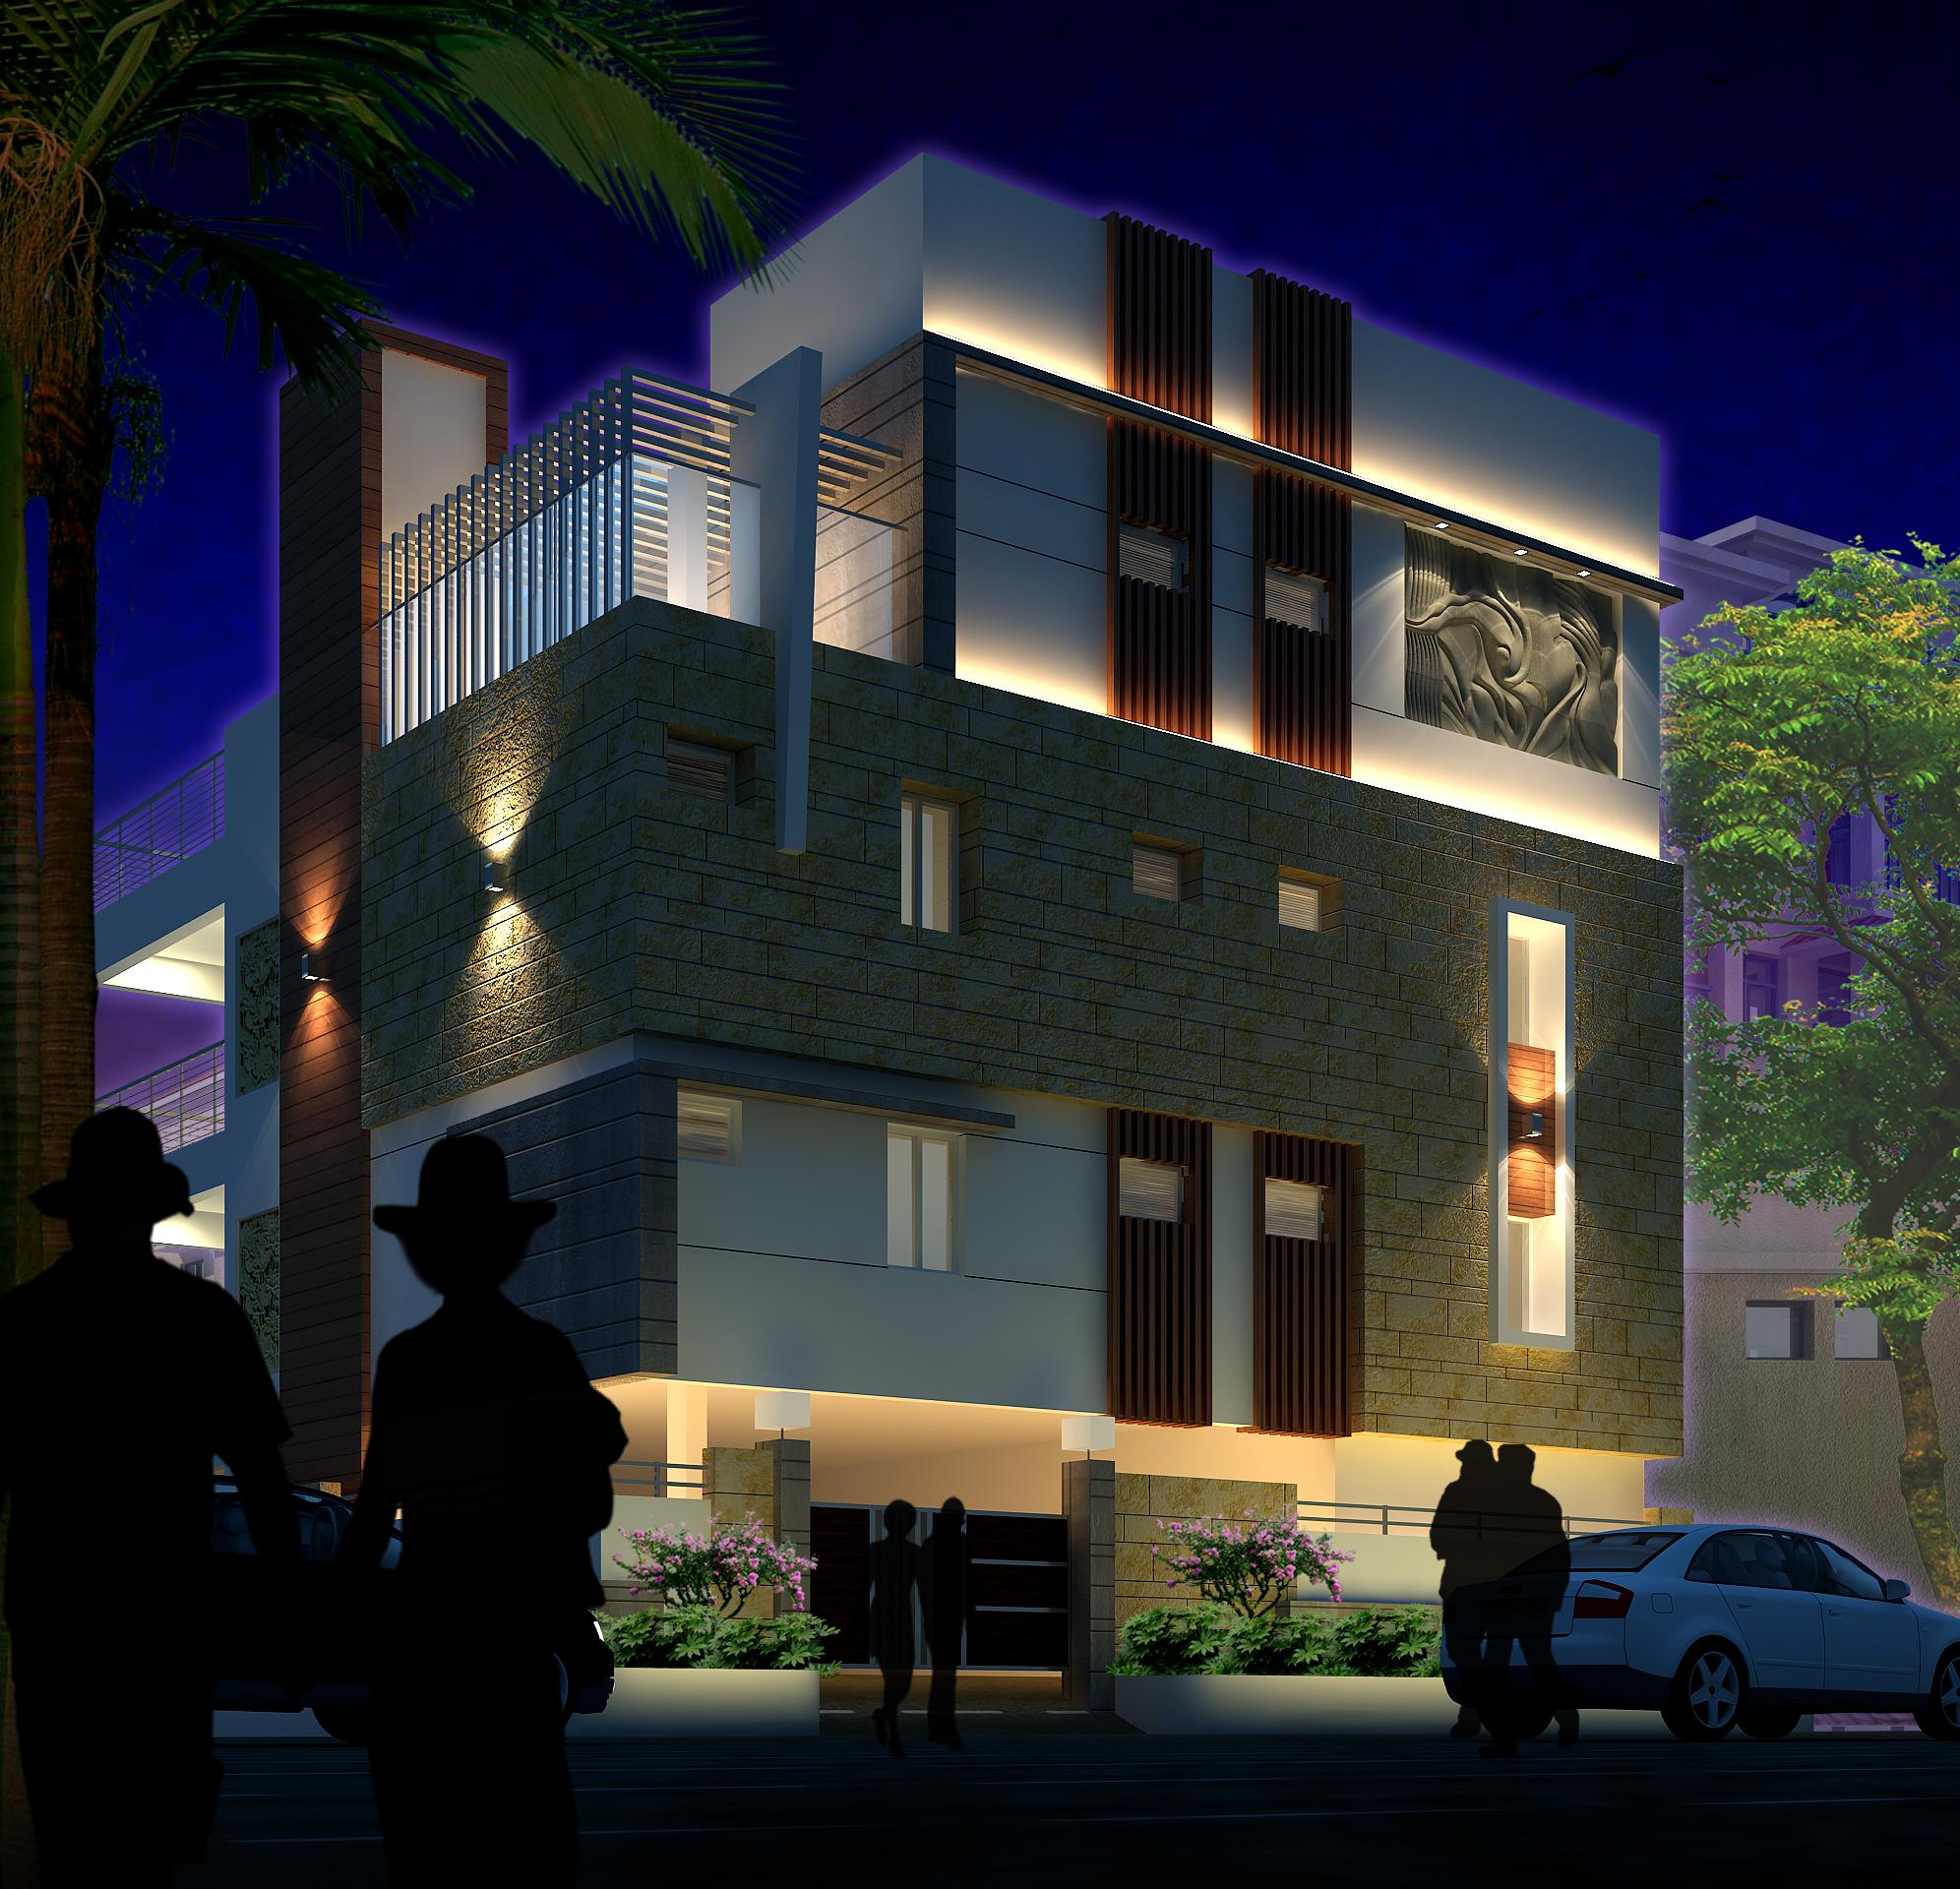 ar-concepts-jailpal-residential-elevation-night-image